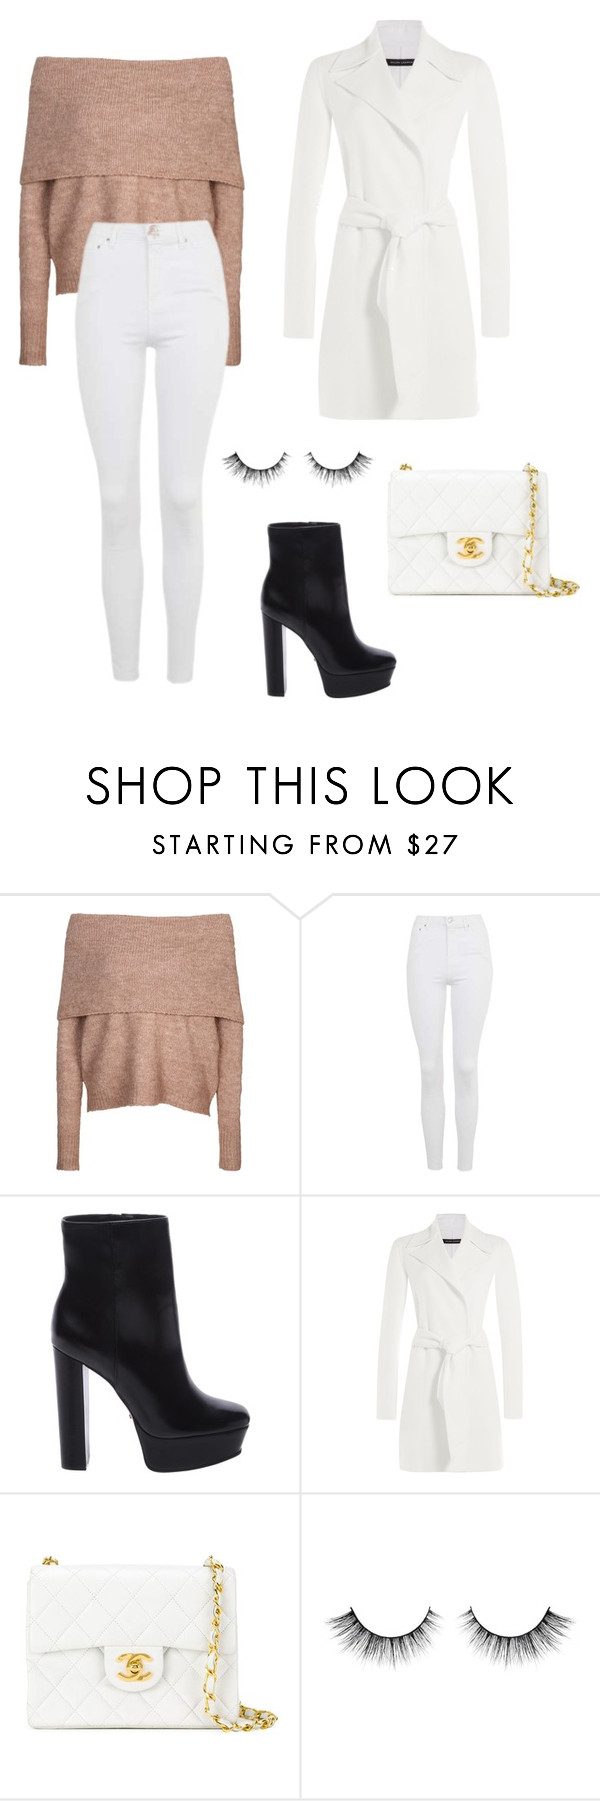 """Untitled #241"" by itsamandarose on Polyvore featuring ONLY, Topshop, Schutz, Ralph Lauren Black Label and Chanel"